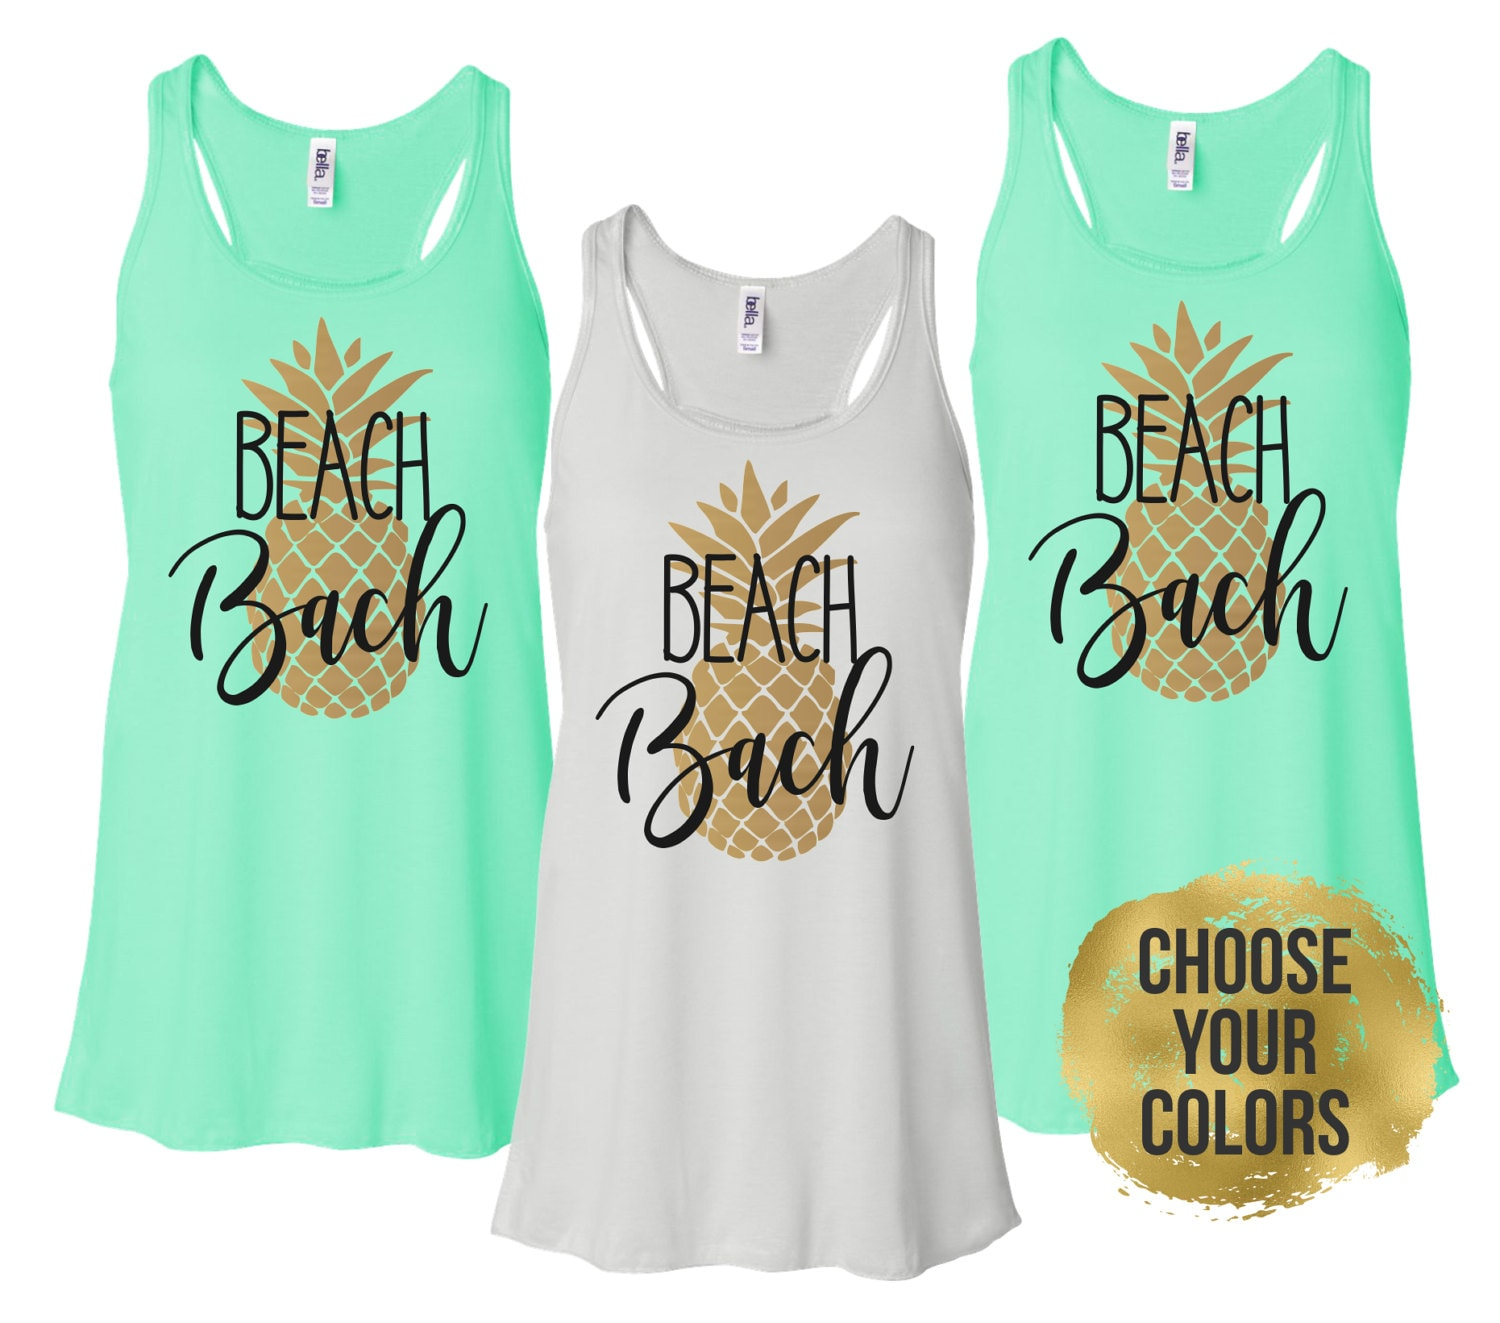 Beach Bachelorette Tanks Pineapple Party Shirts